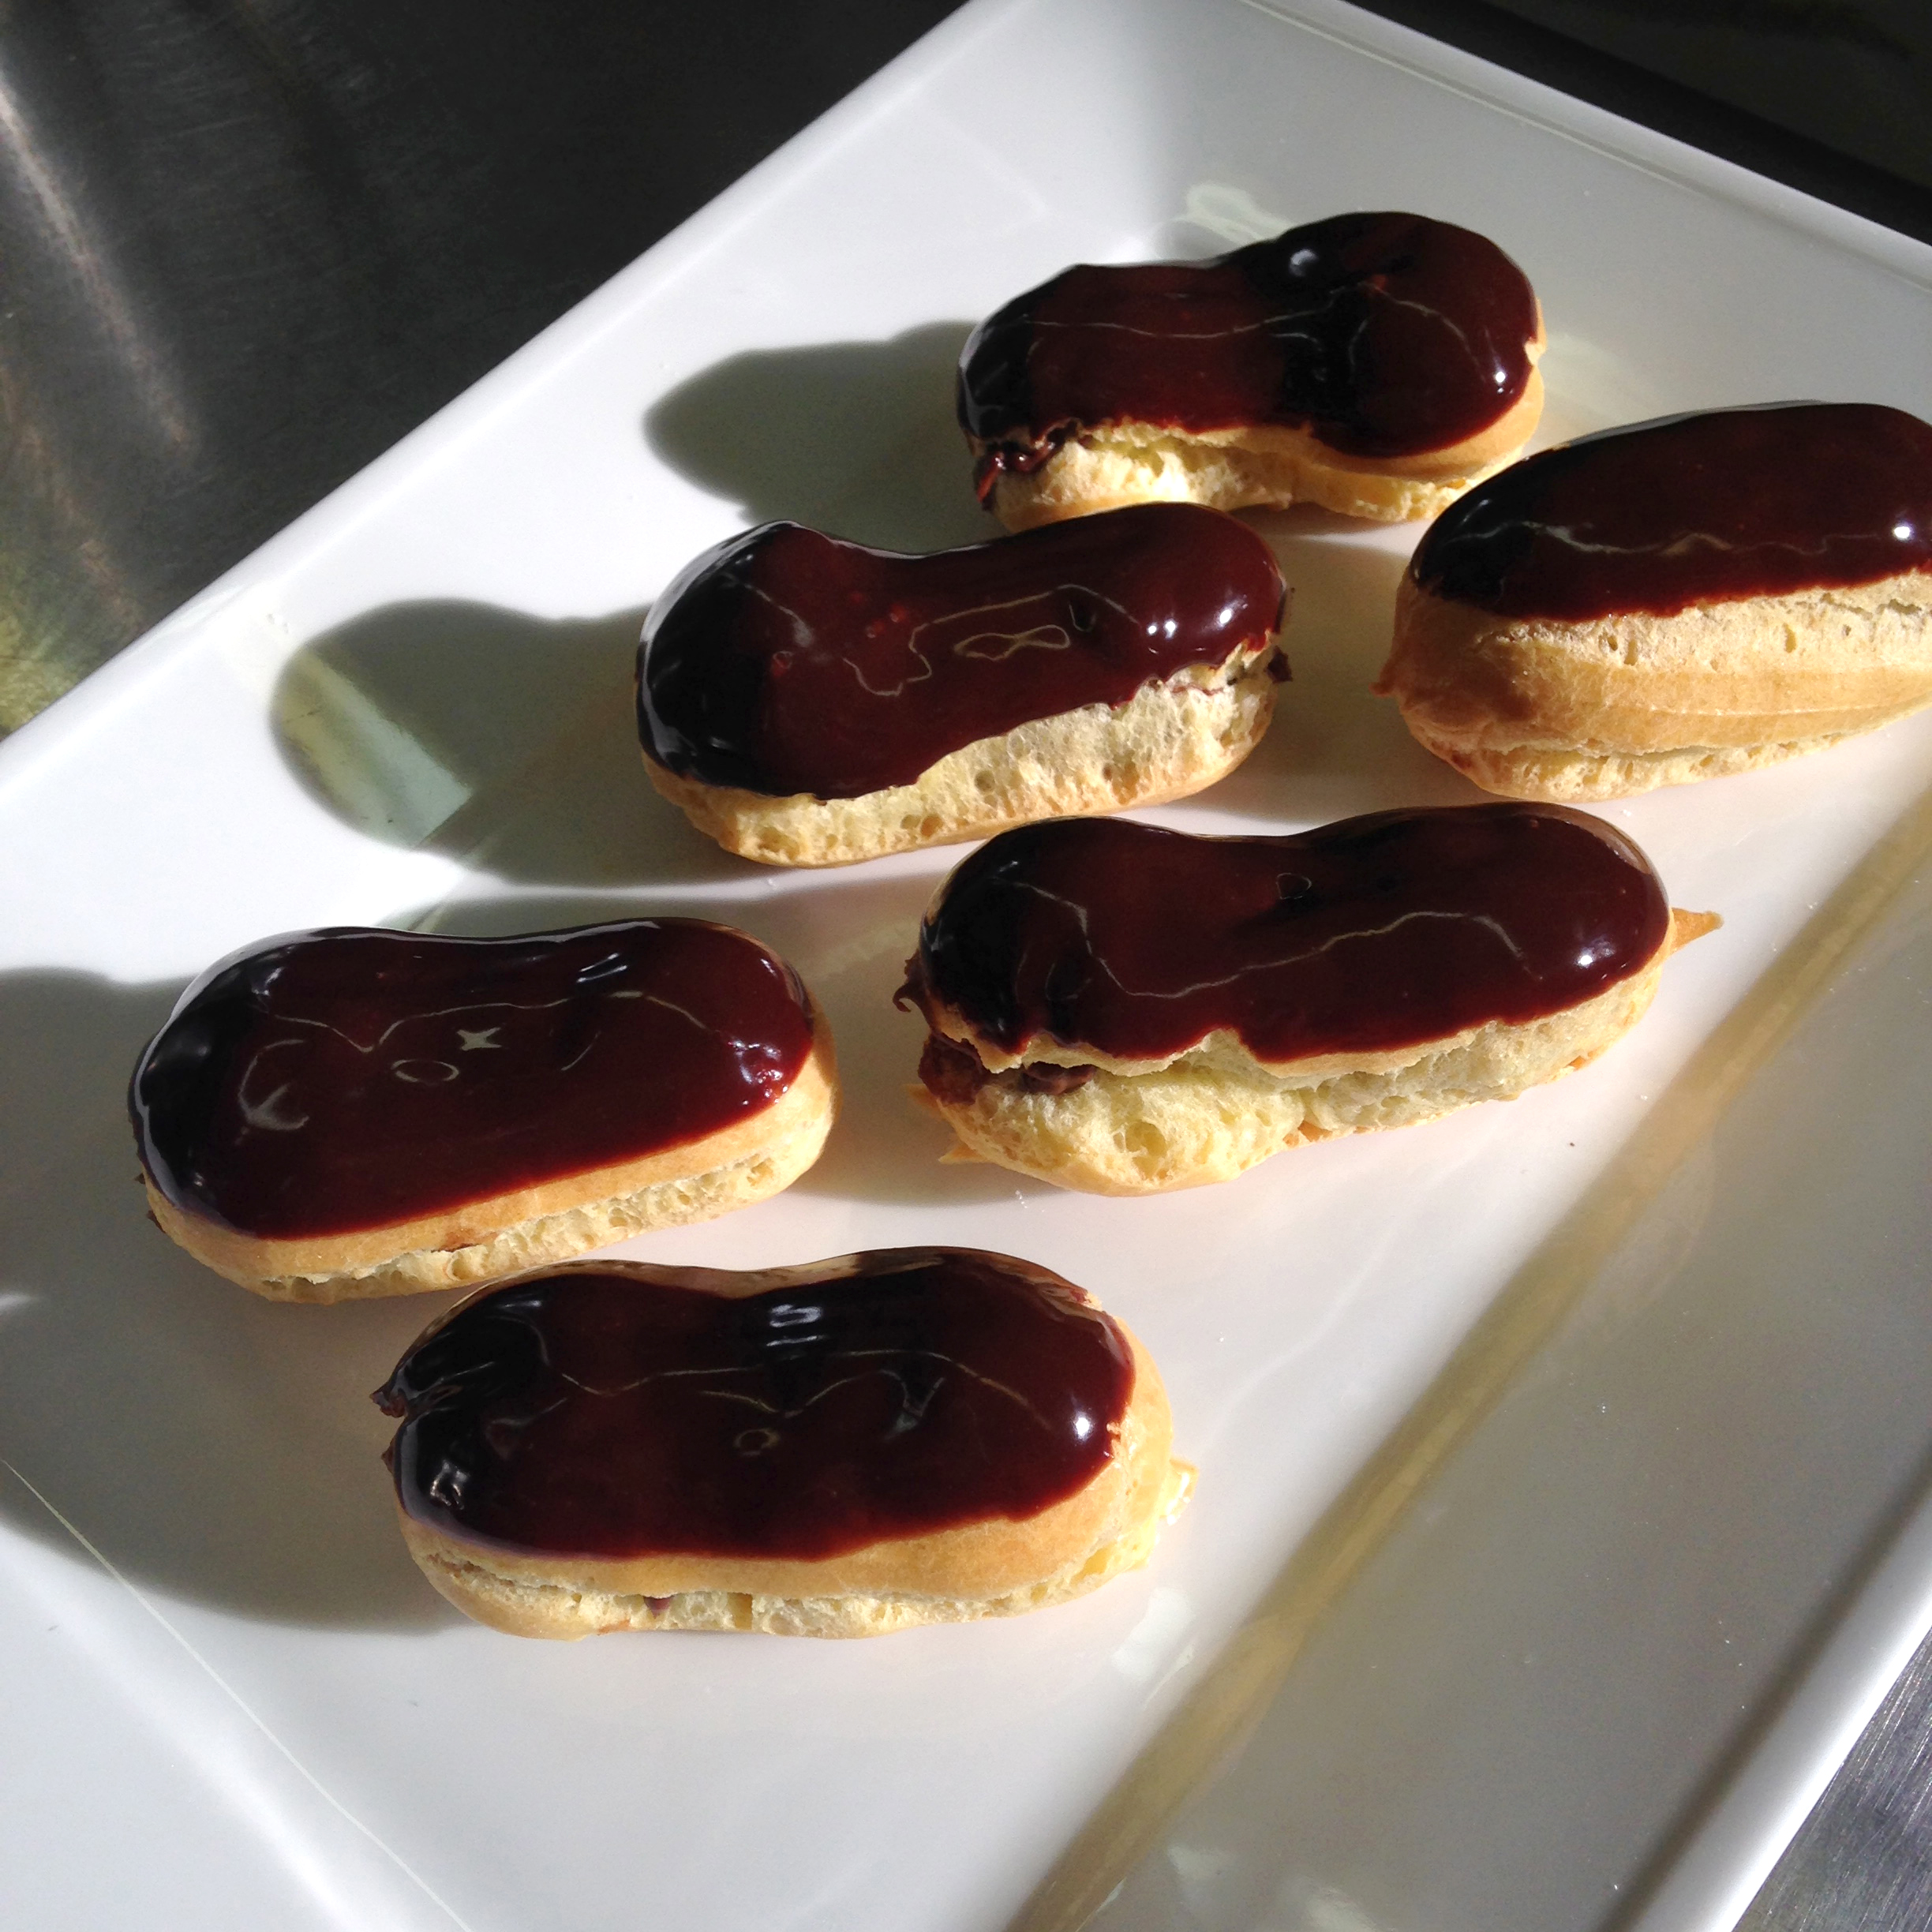 The mini pastries were filled with chocolate cream and dipped in ganache.